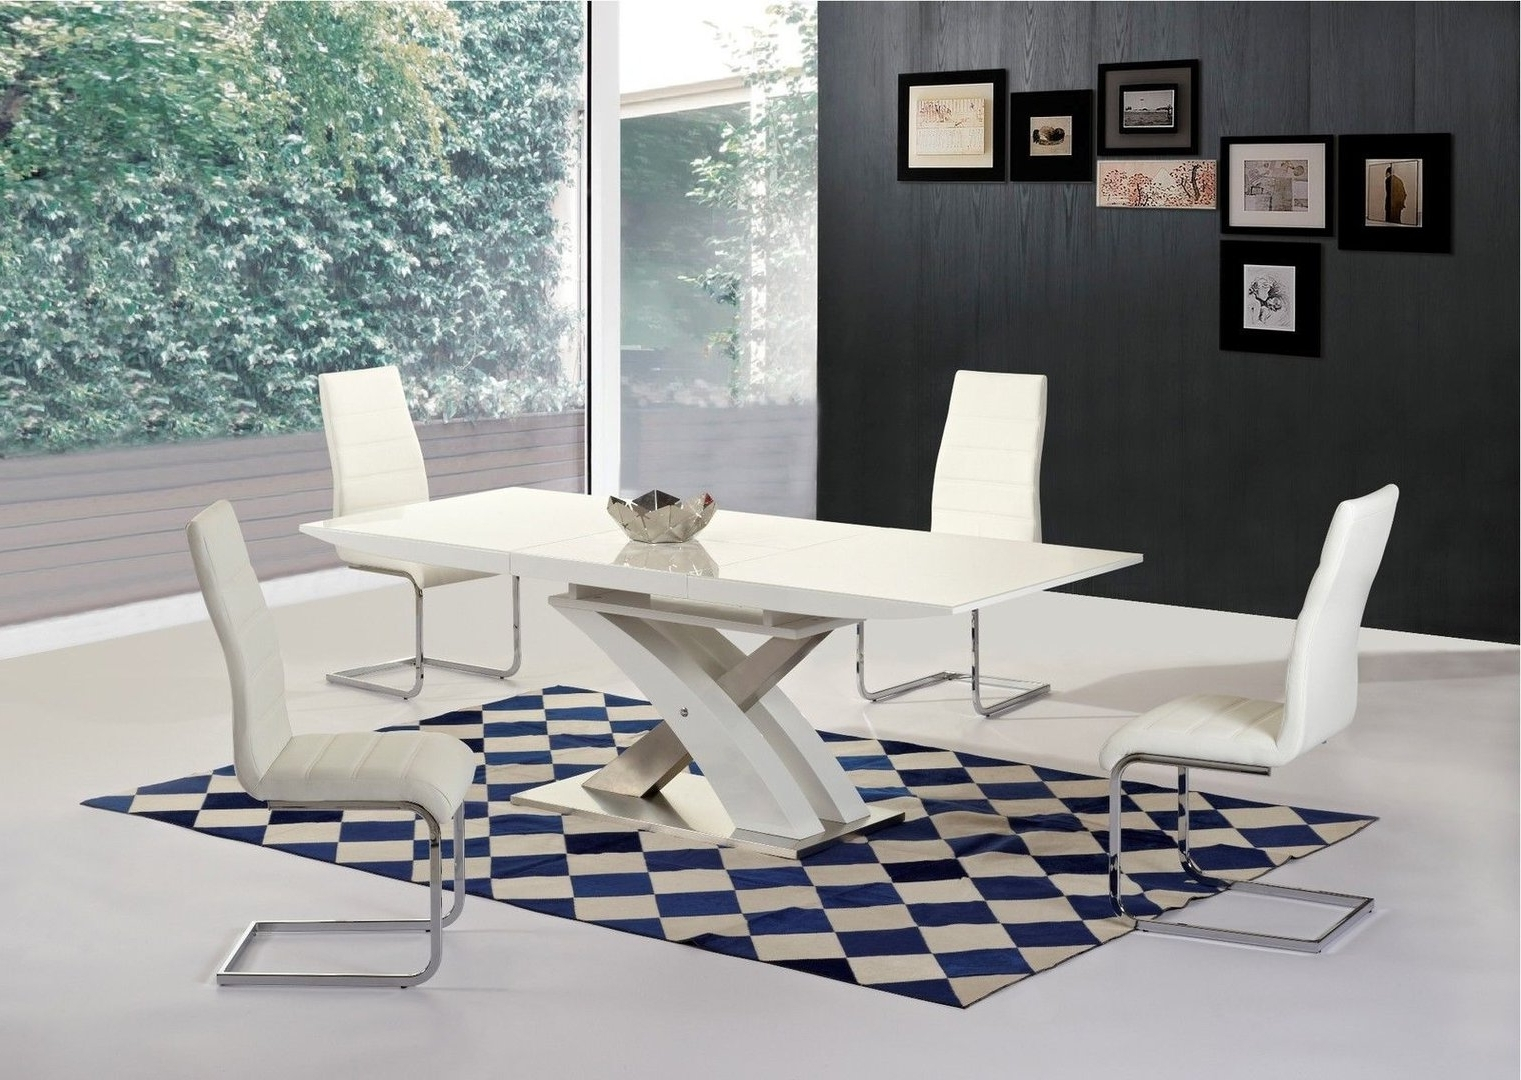 Newest Extendable Dining Tables With 6 Chairs Within White High Gloss / Glass Extending Dining Table & 6 Chairs (Gallery 7 of 25)